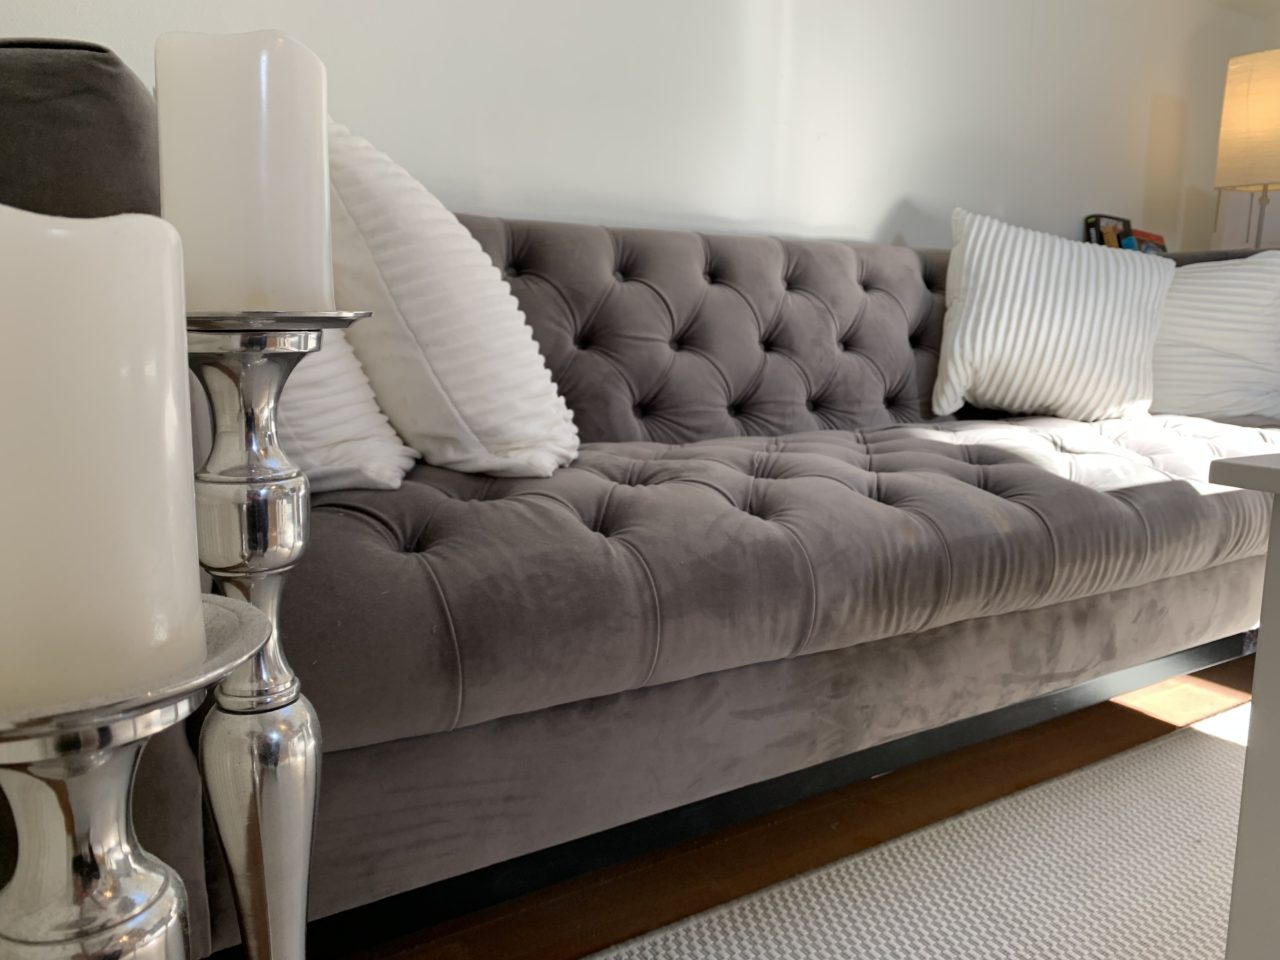 Velvet Couch With White Pillows And Candles